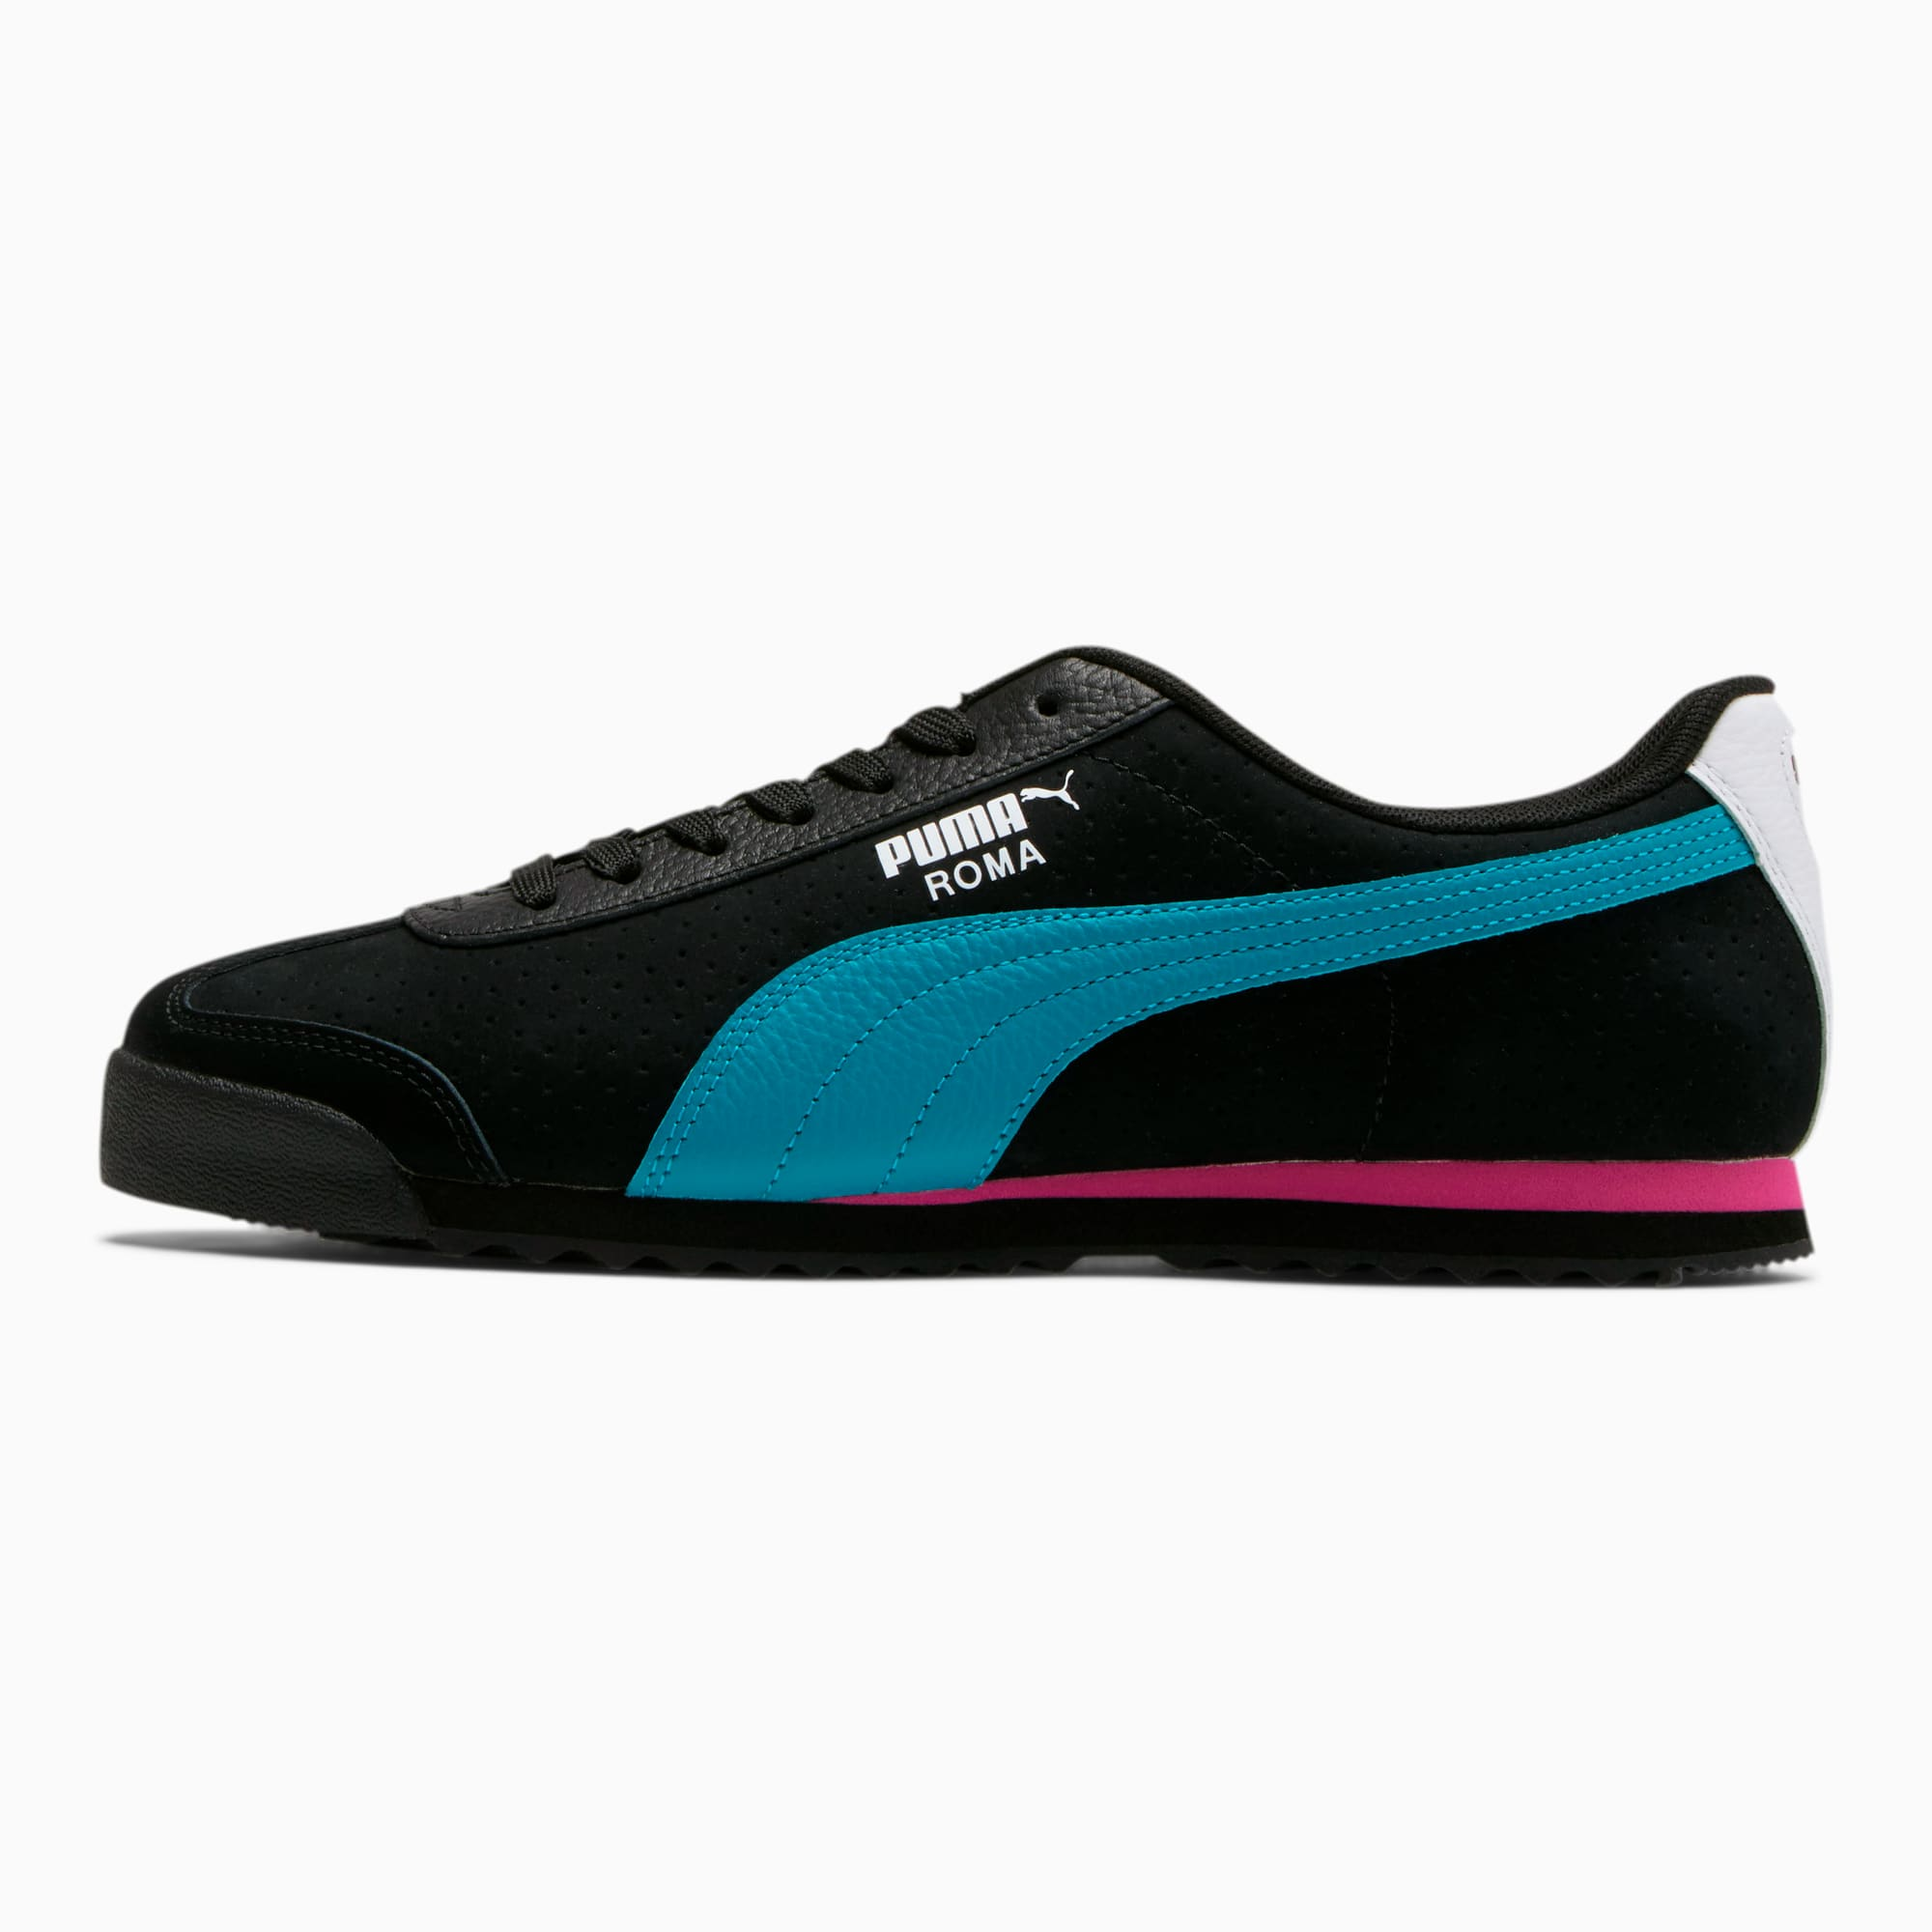 For Sales Men's Sneakers & Athletic Shoes PUMA Roma Suede